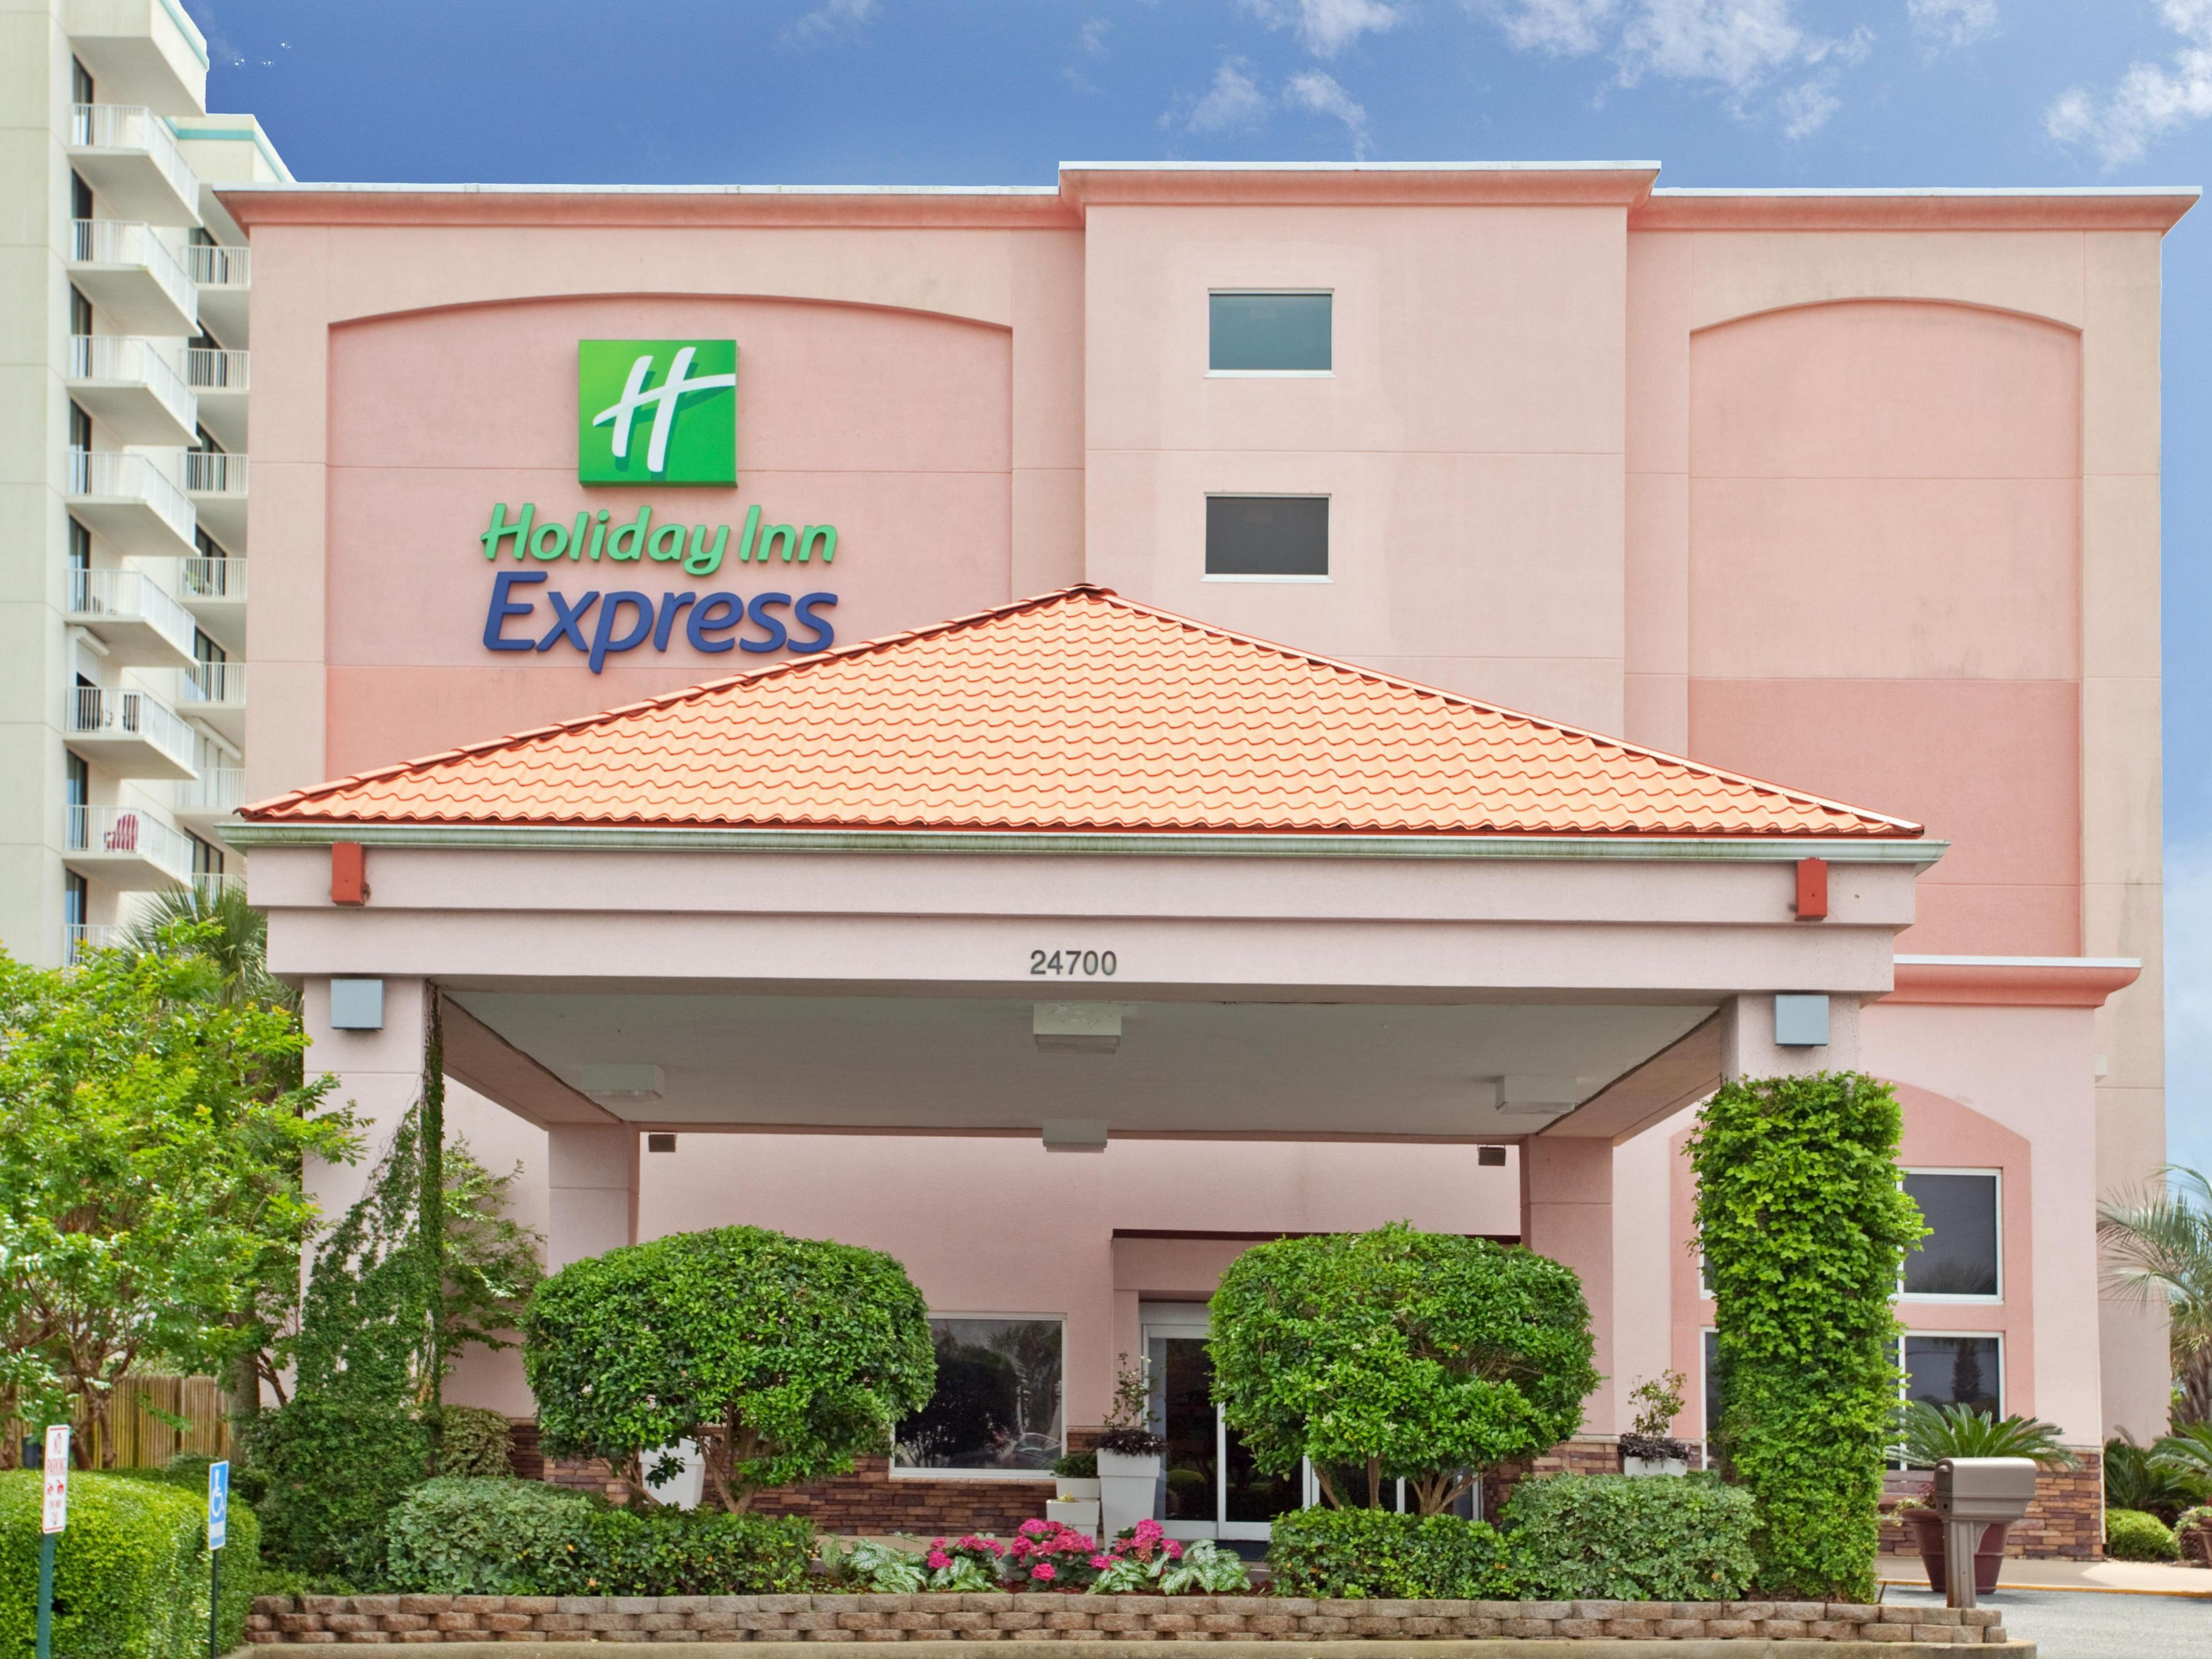 Your slice of paradise at the Hoilday Inn Express, Orange Beach